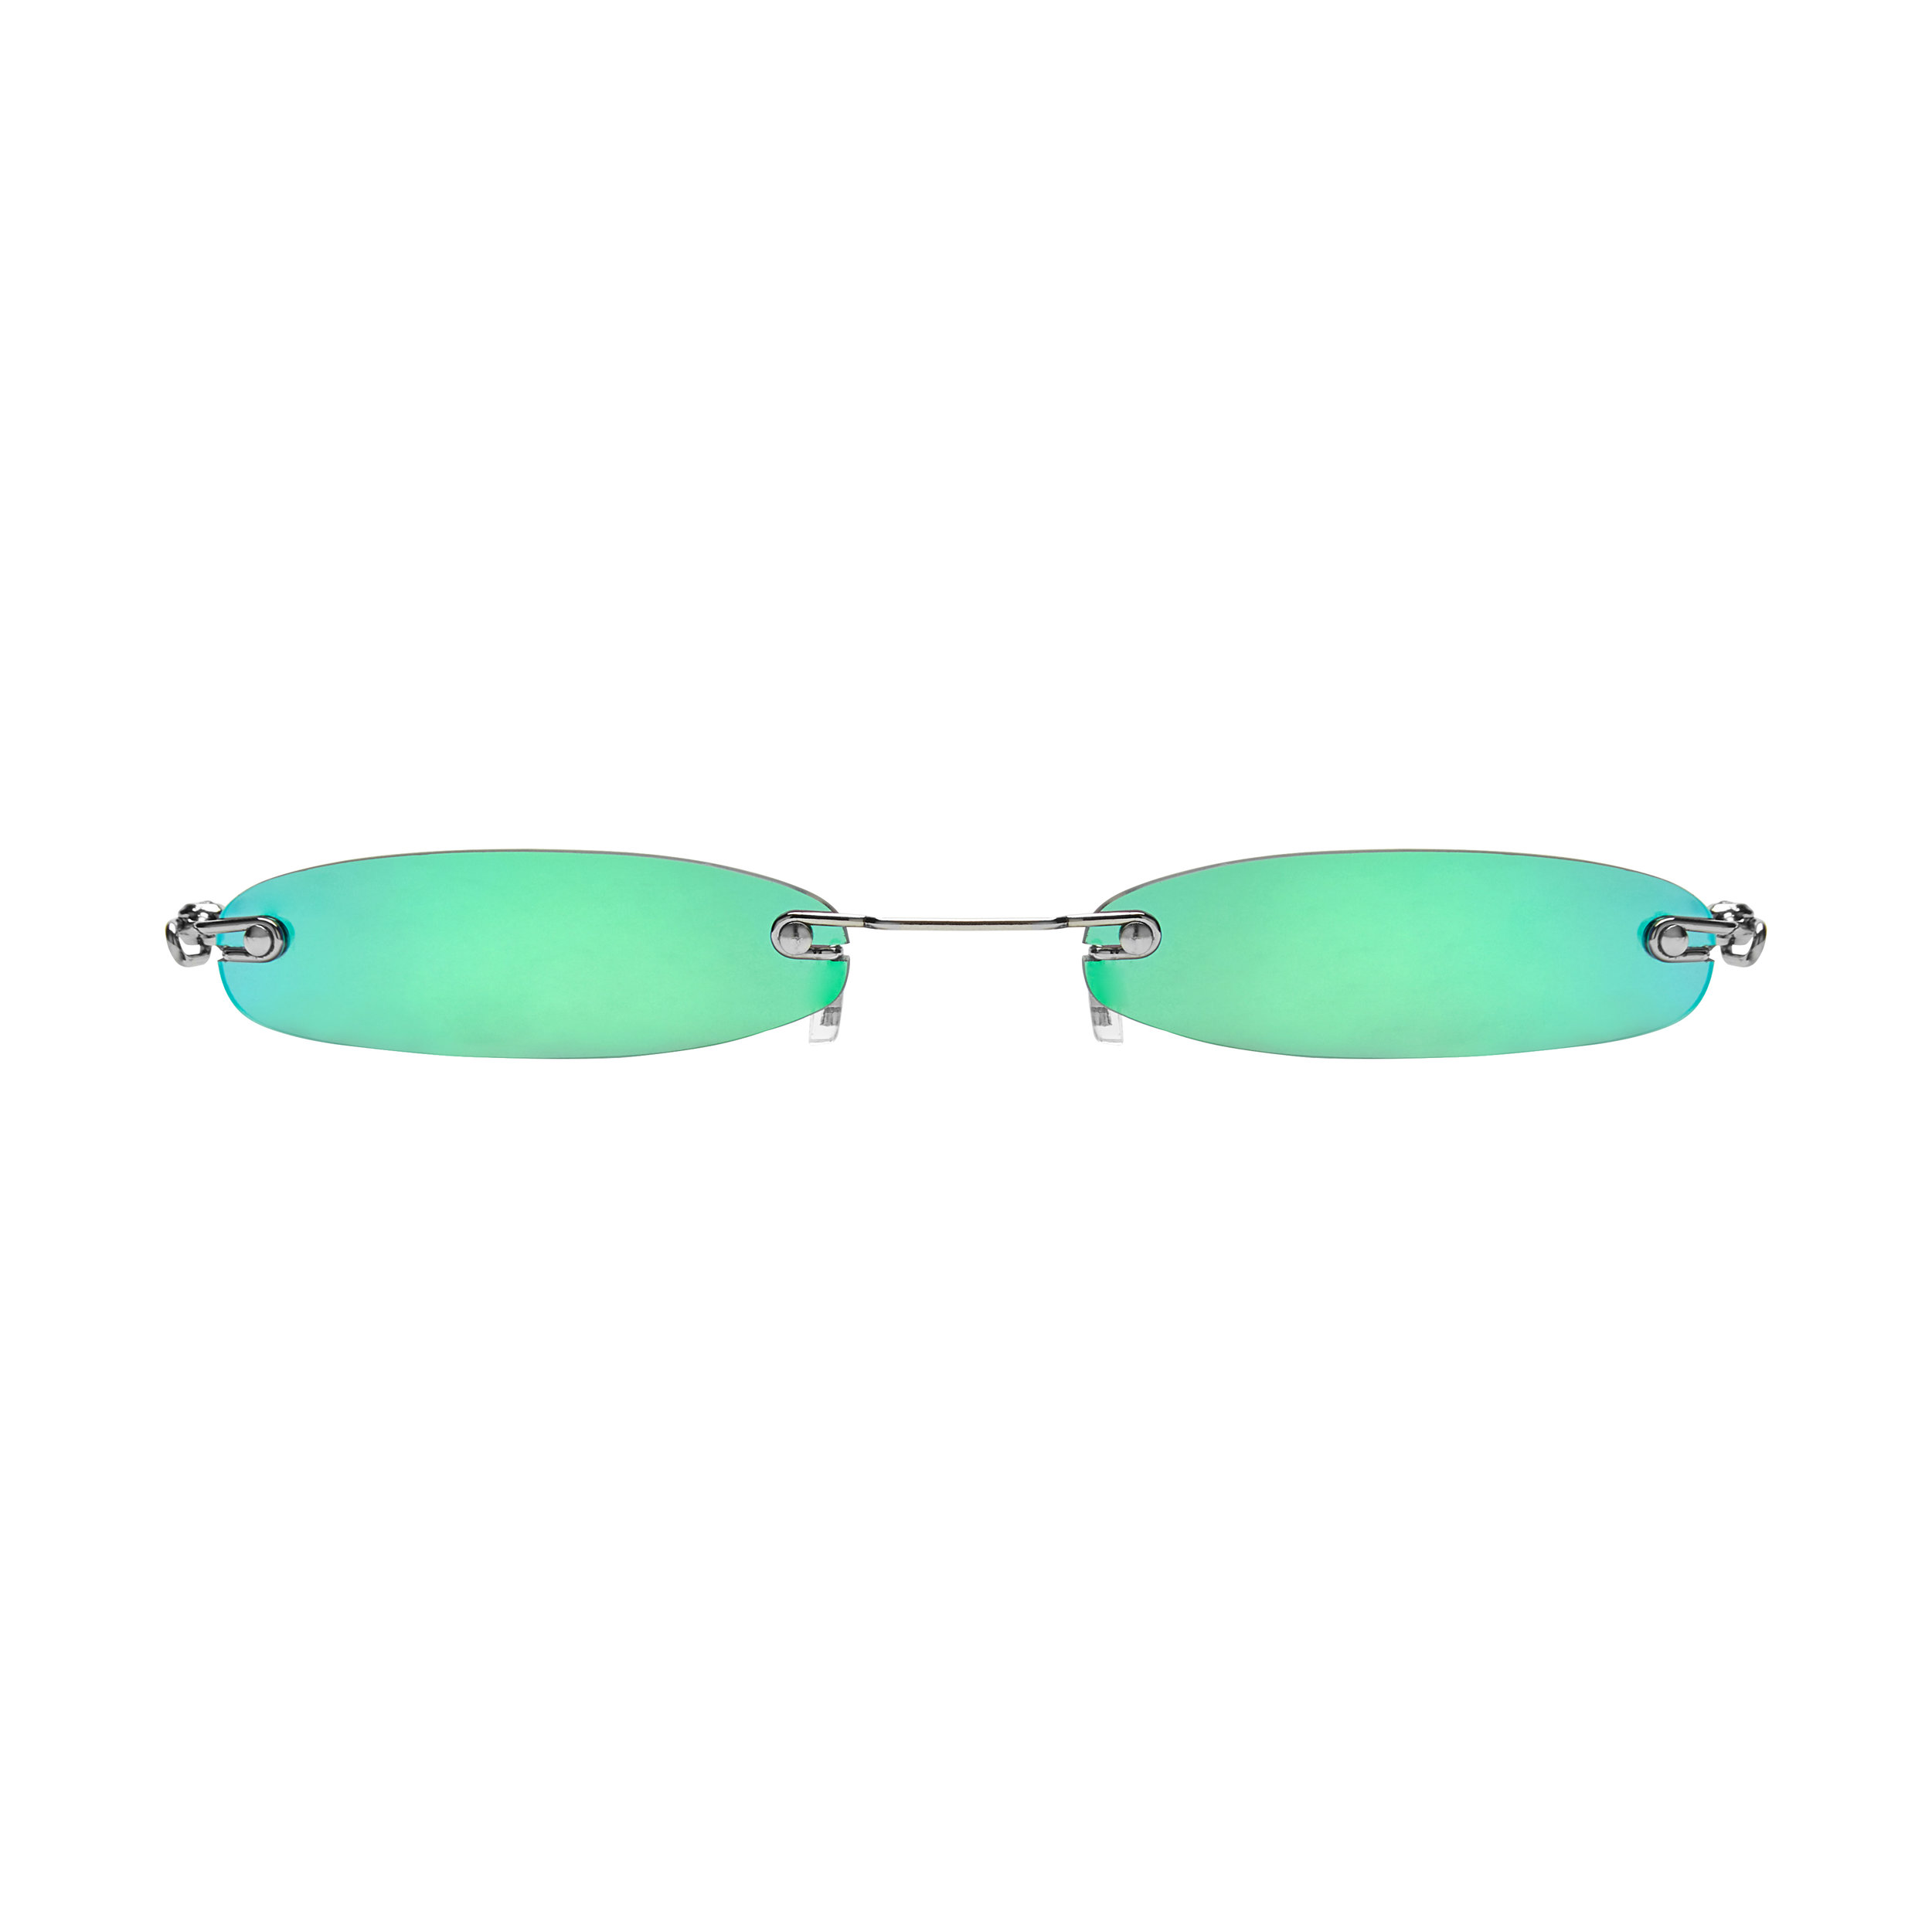 ChristianahJones_Glasses_ReflectiveGreen_01.jpg